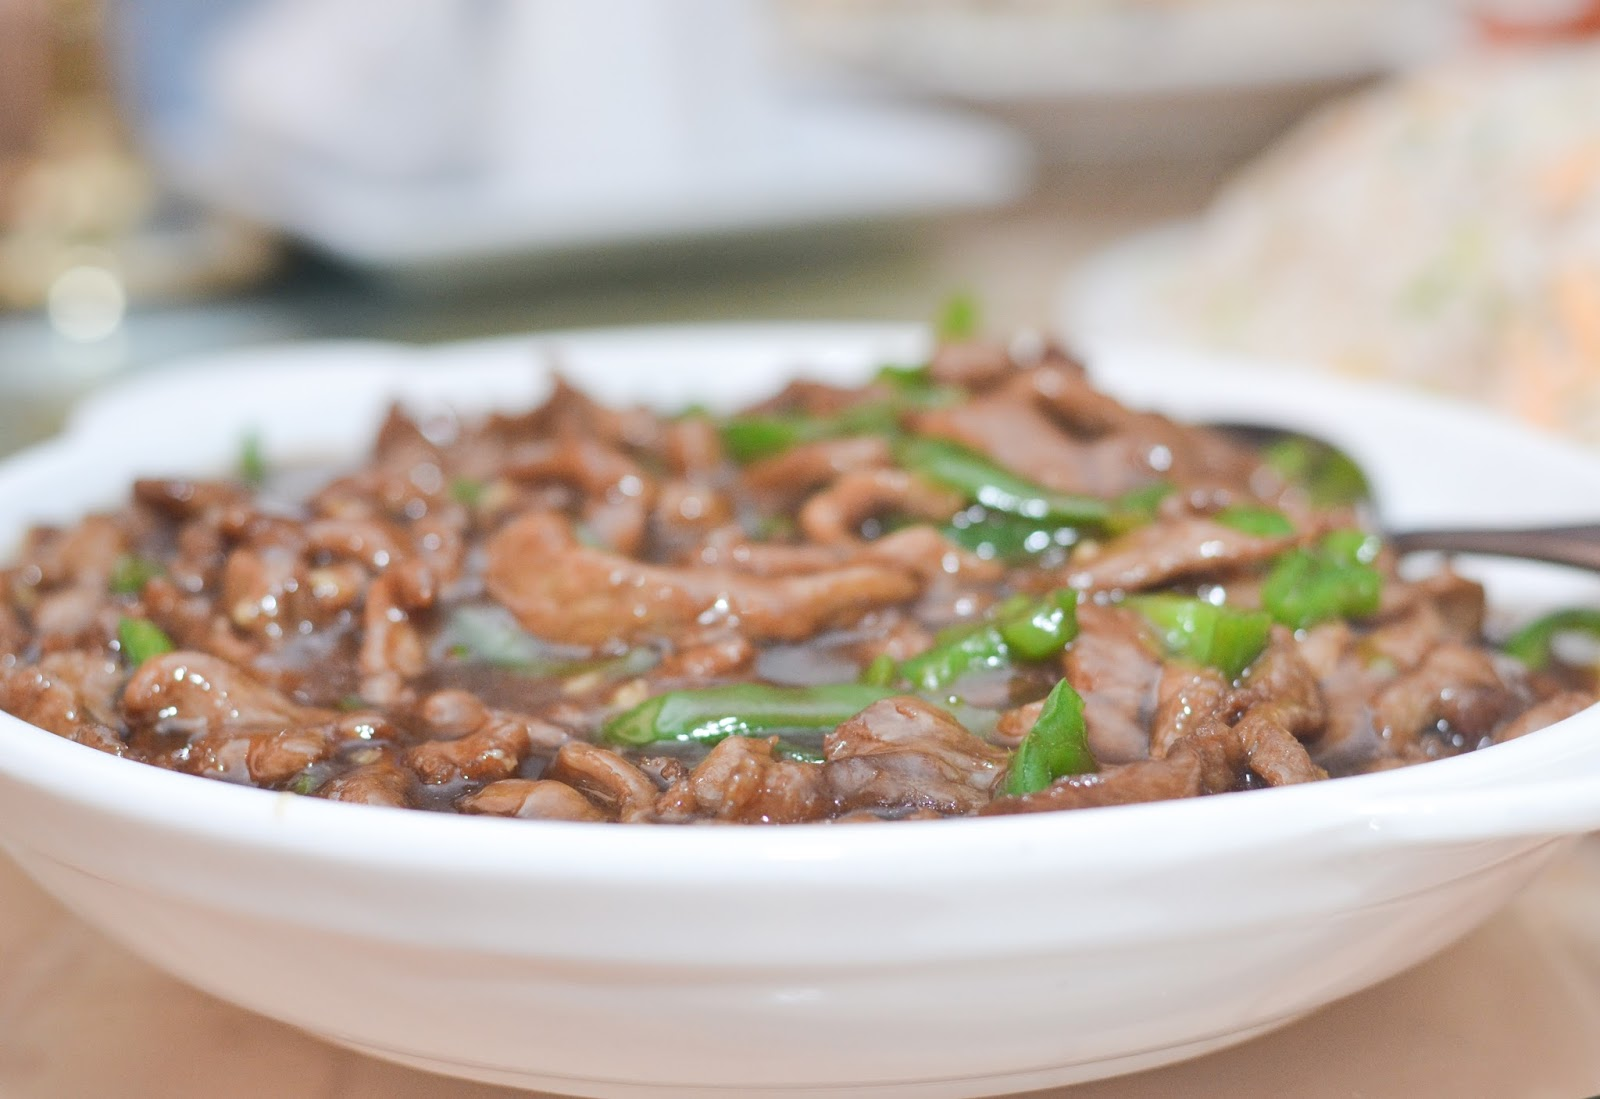 Shredded Beef Sauce